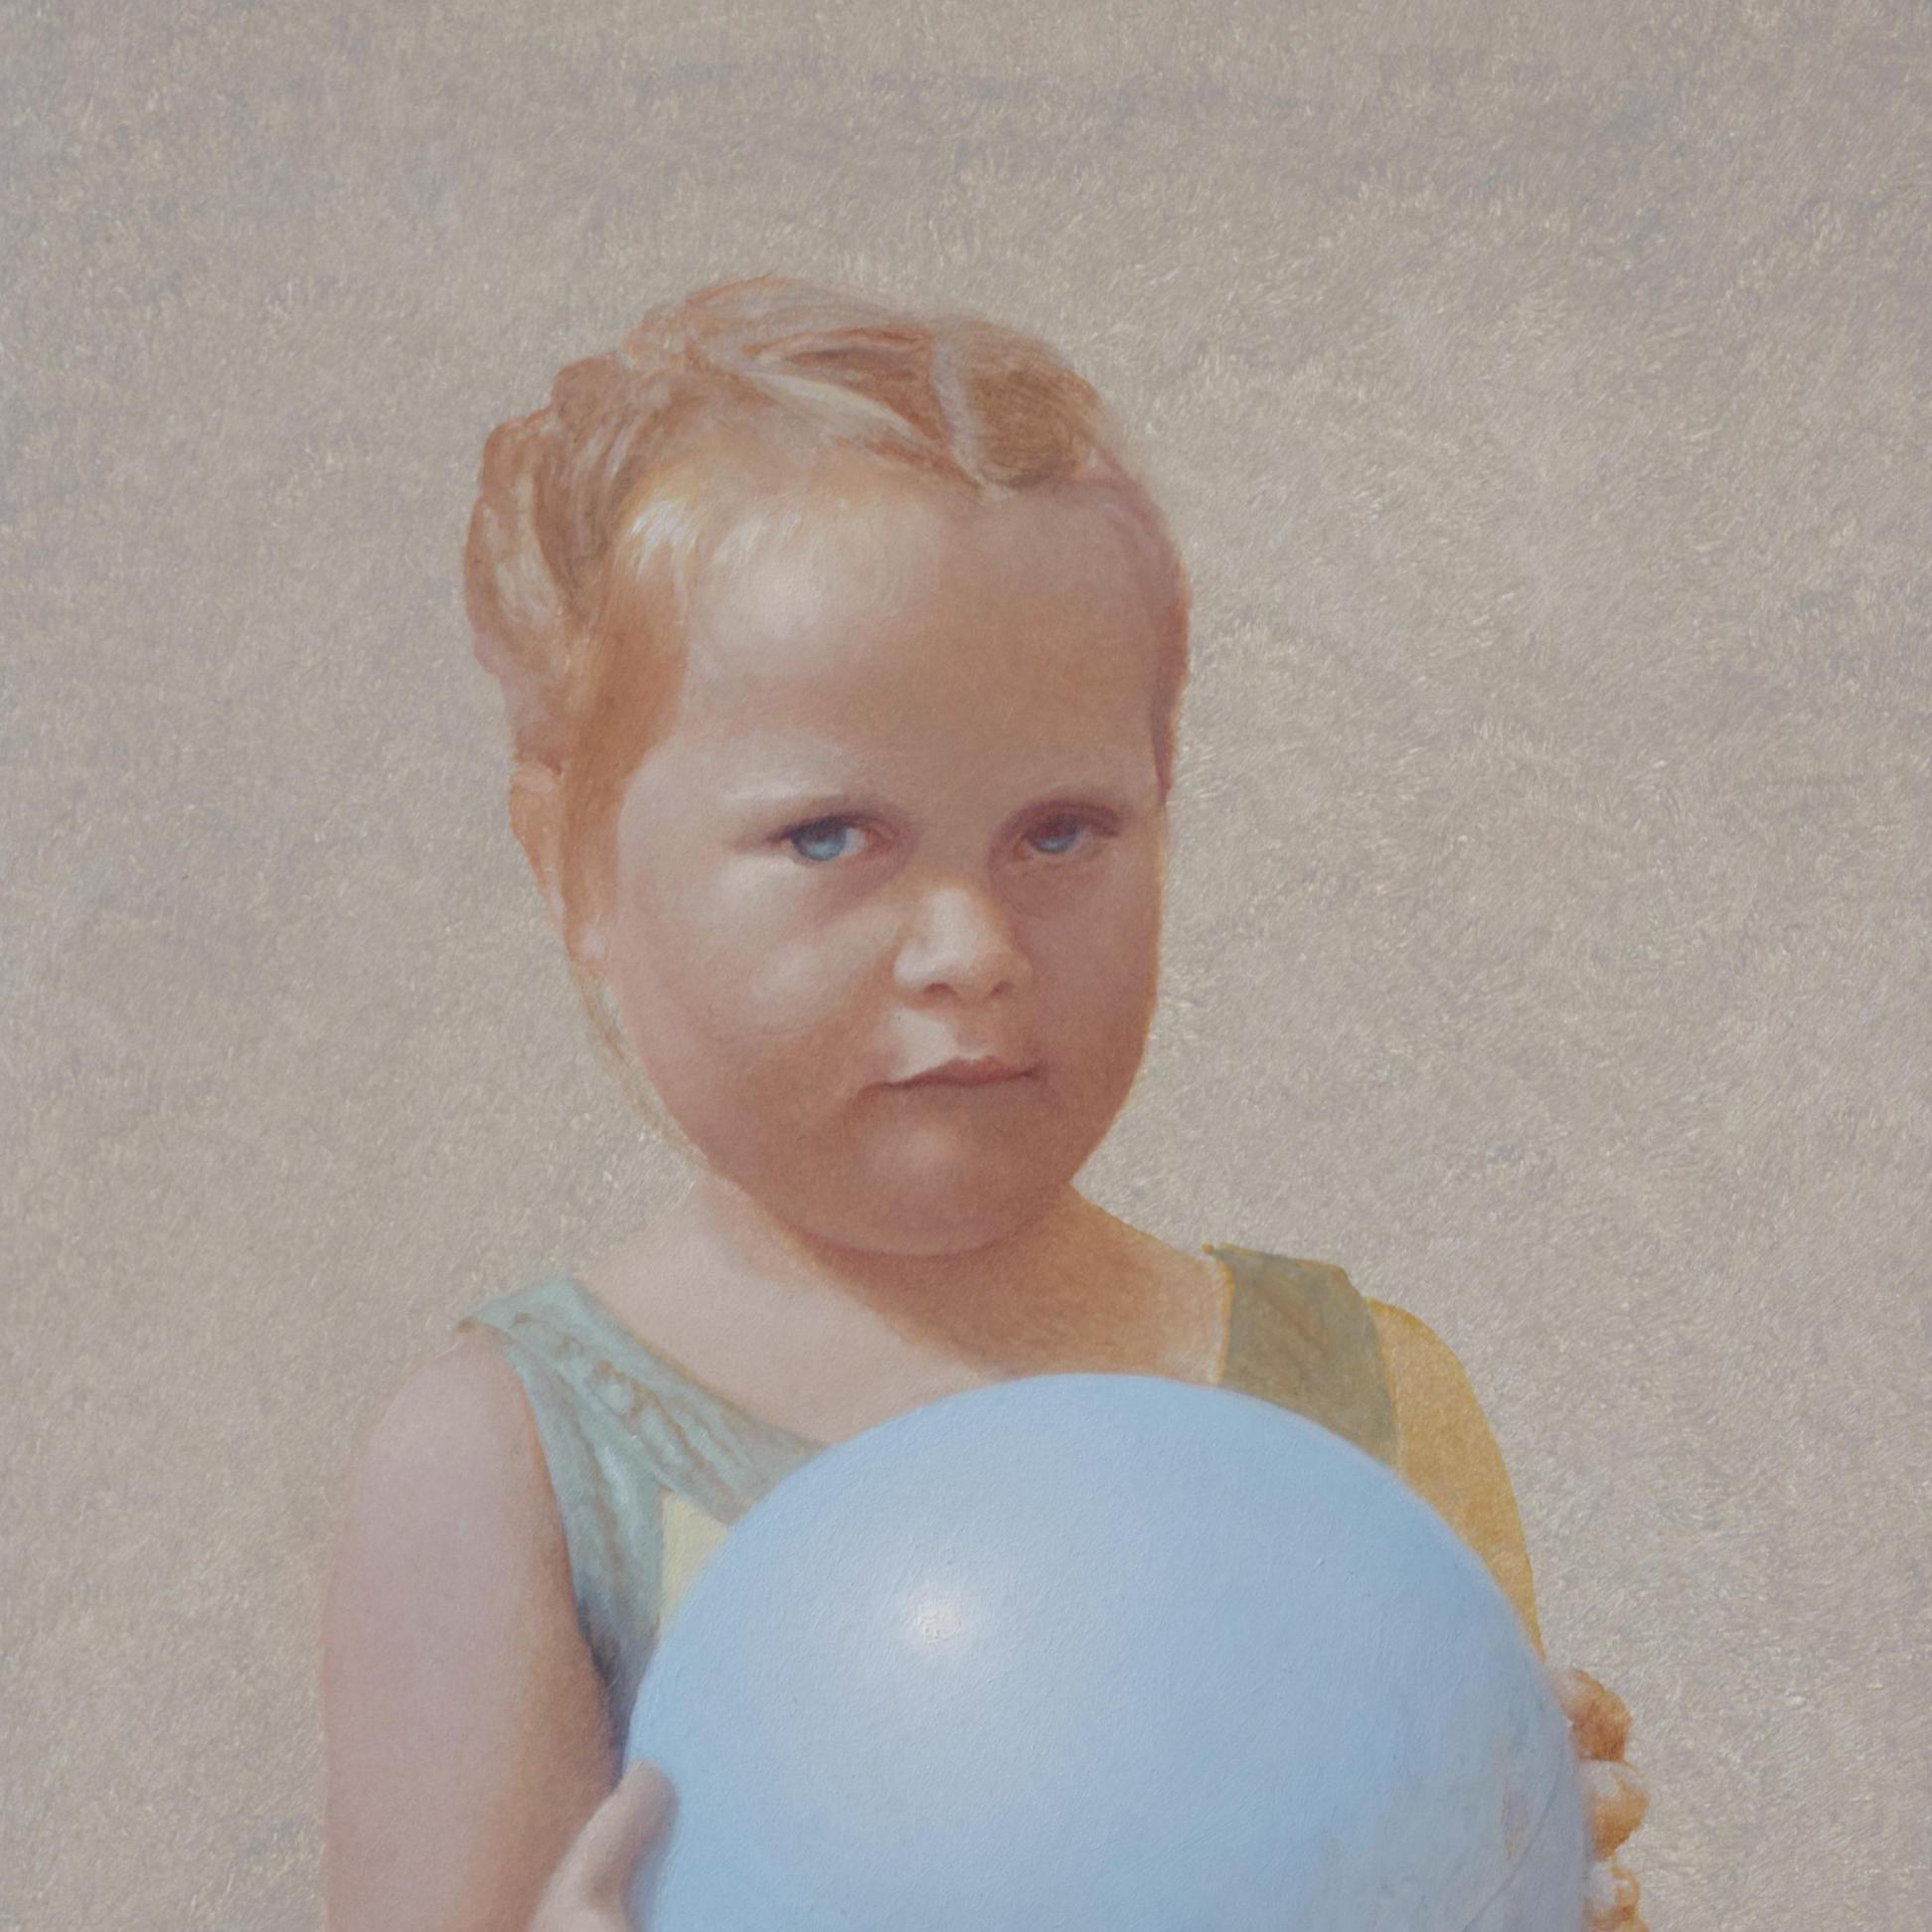 Ayla, oil on panel, 10.75 x 7.25 inches, 2020